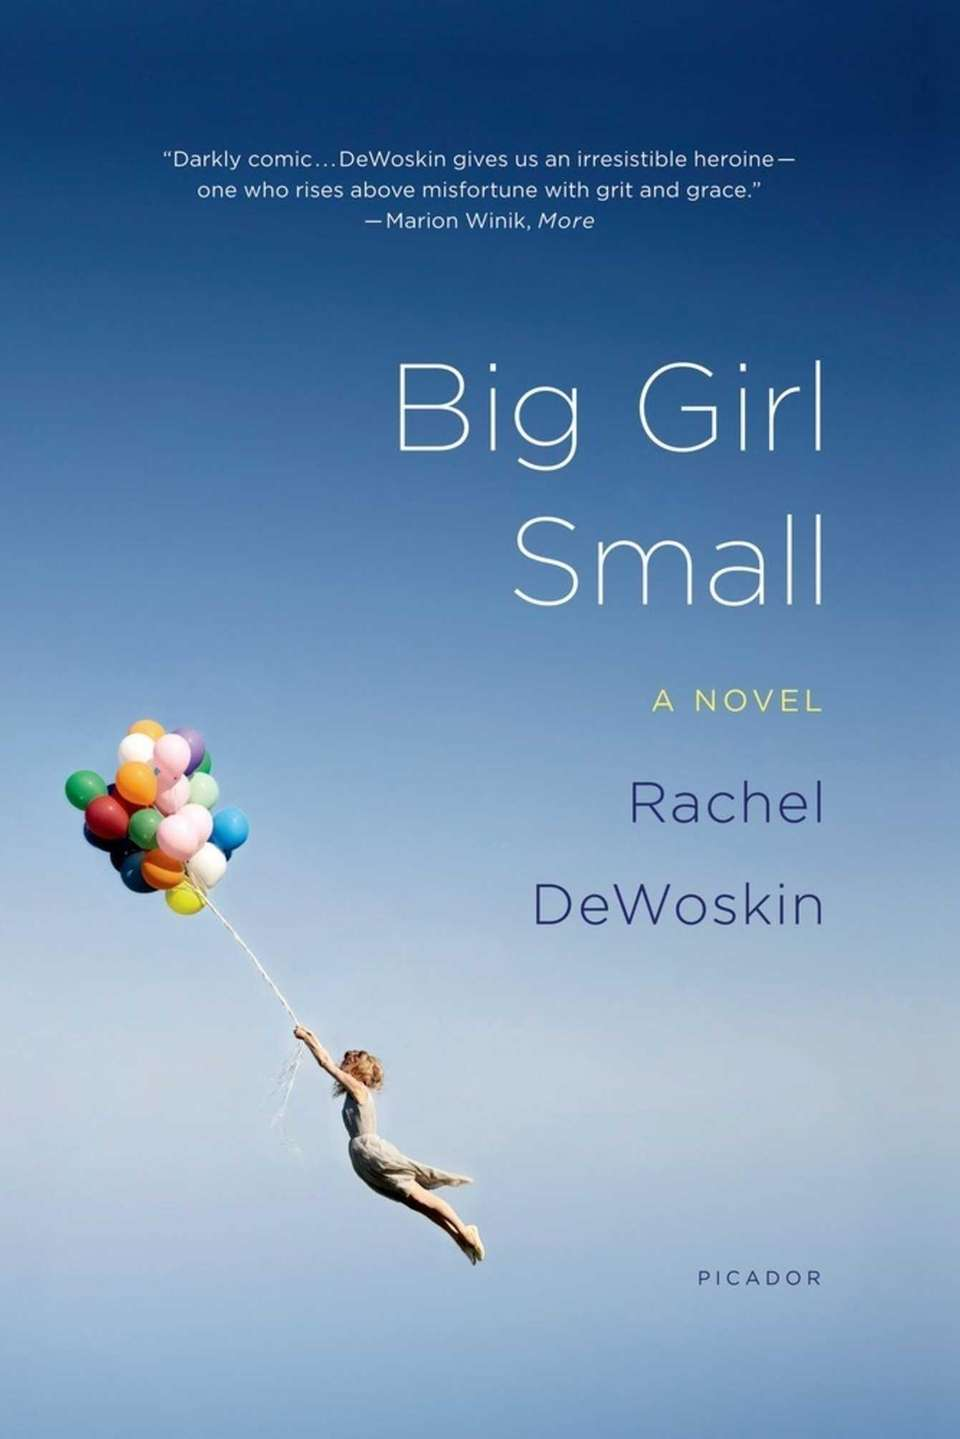 A thoroughly modern coming-of-age story with a 3-foot-9-inch